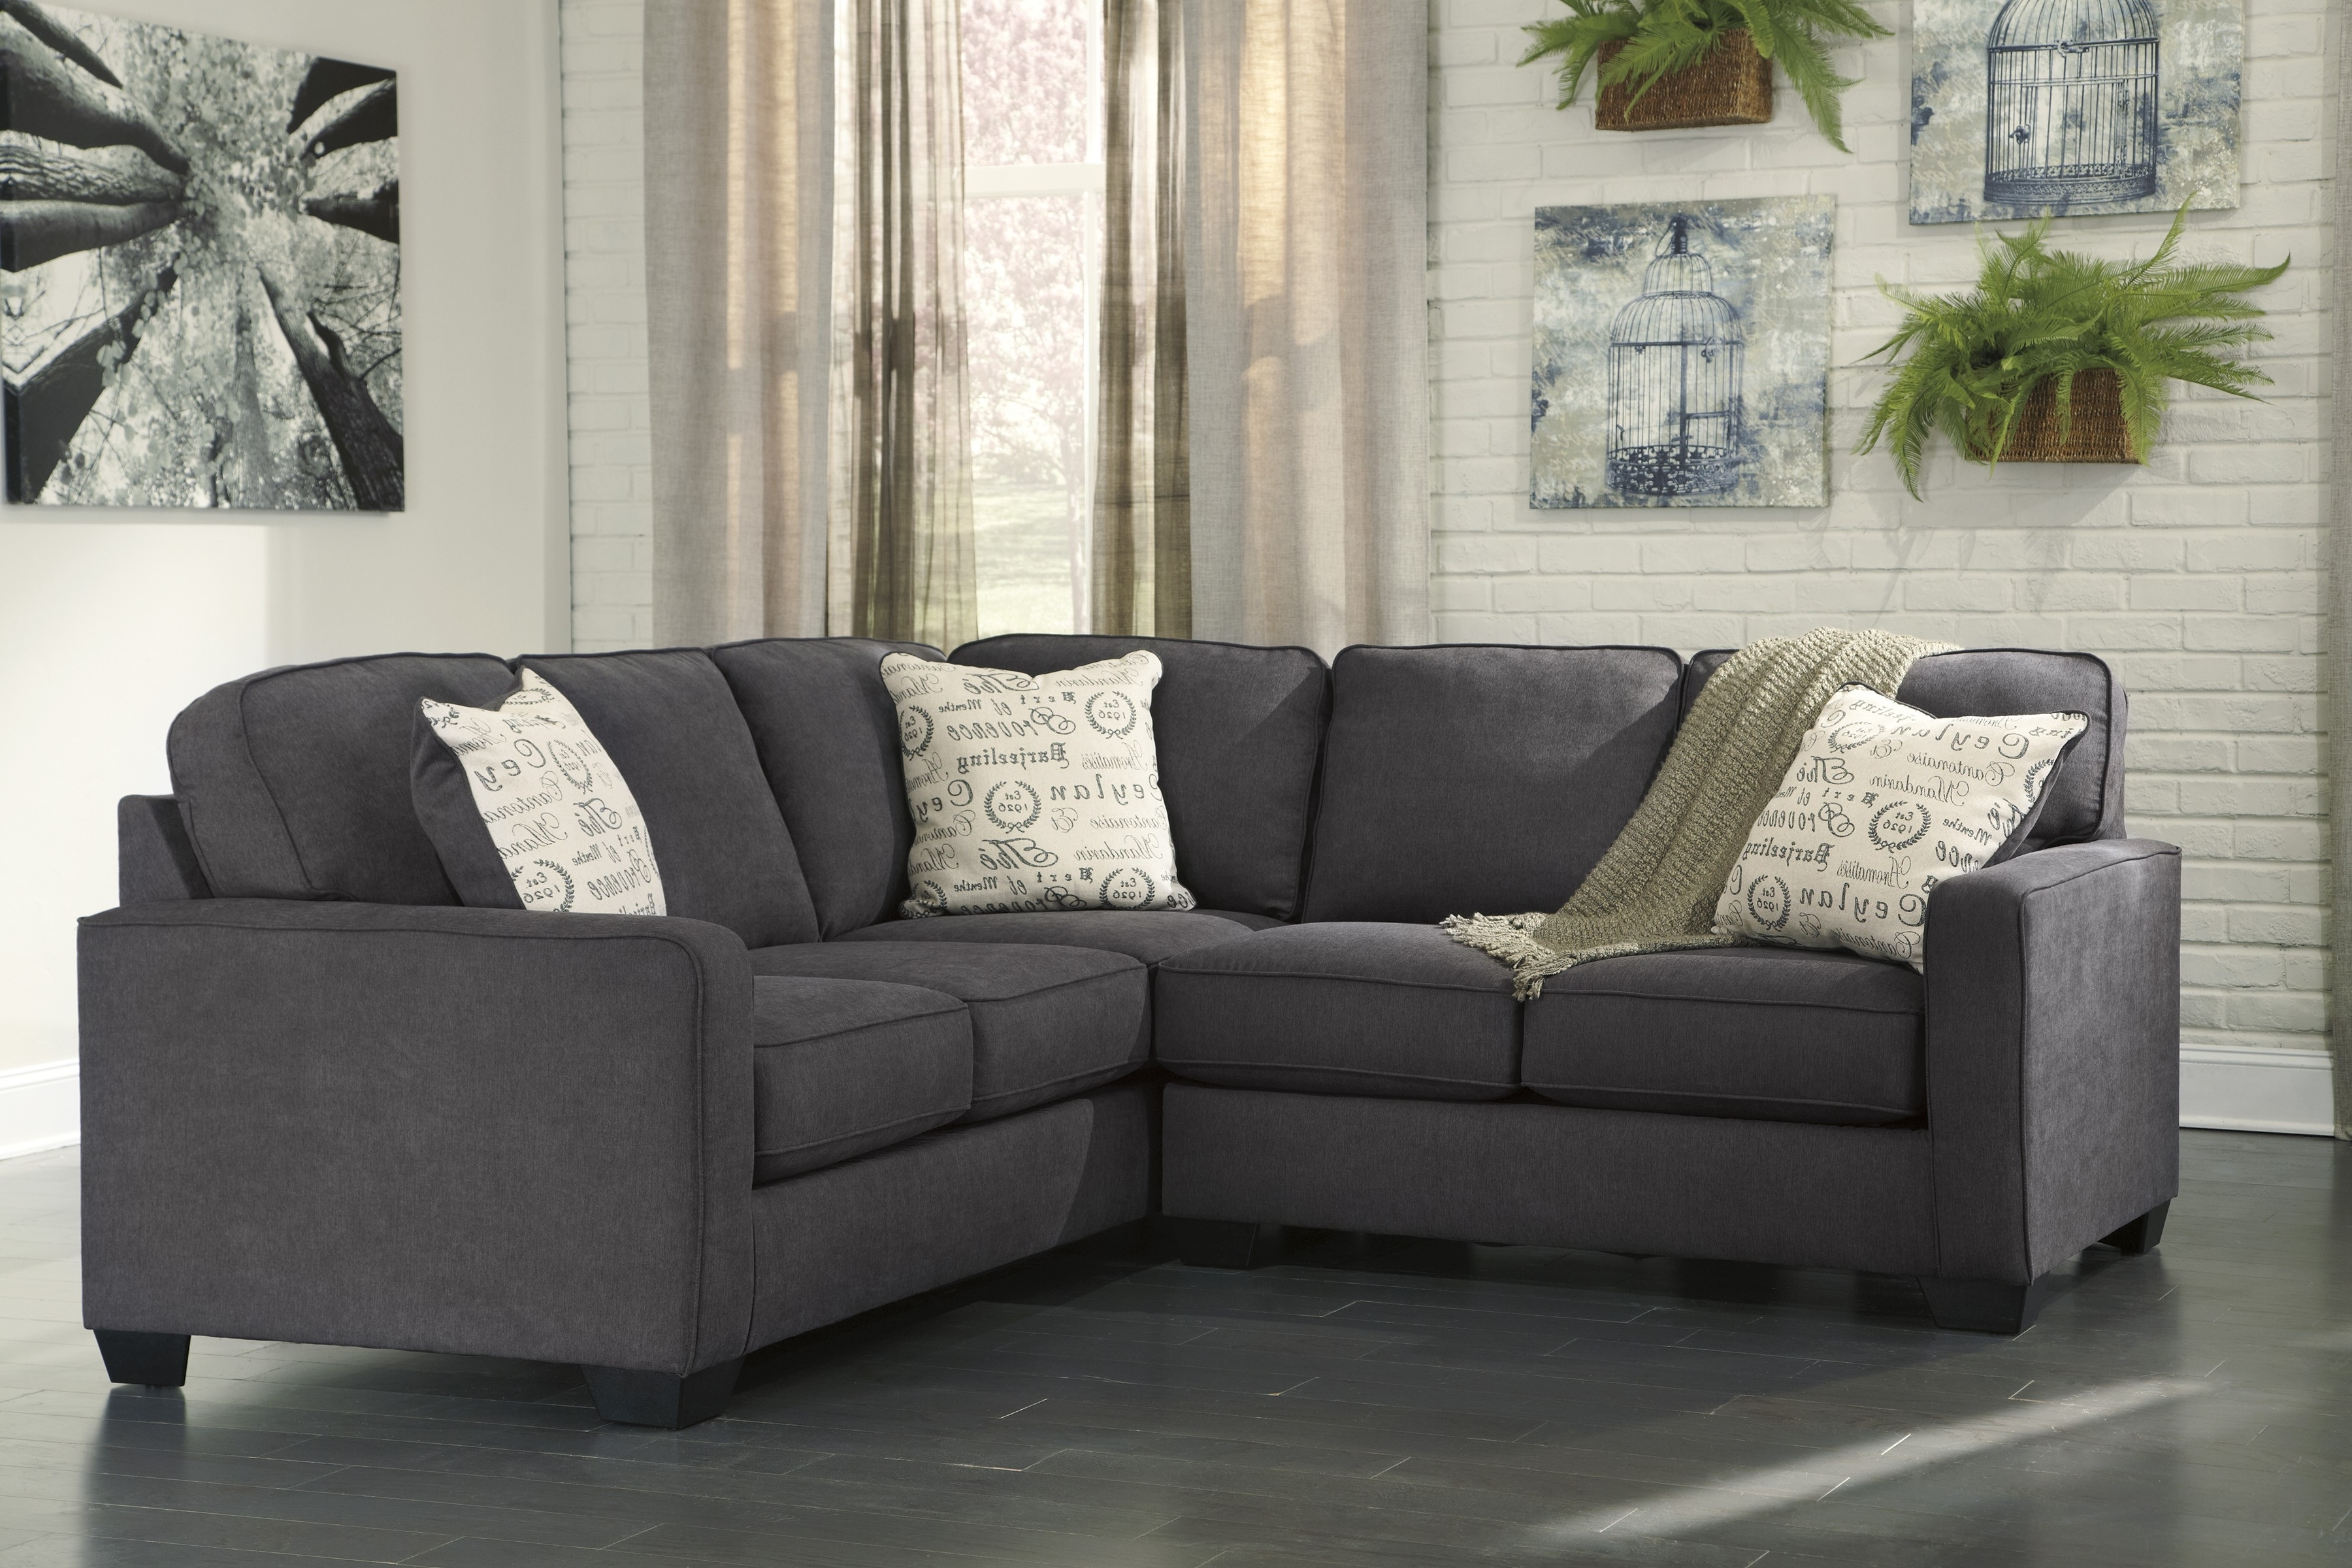 Photos Of 2 Seat Sectional Sofas